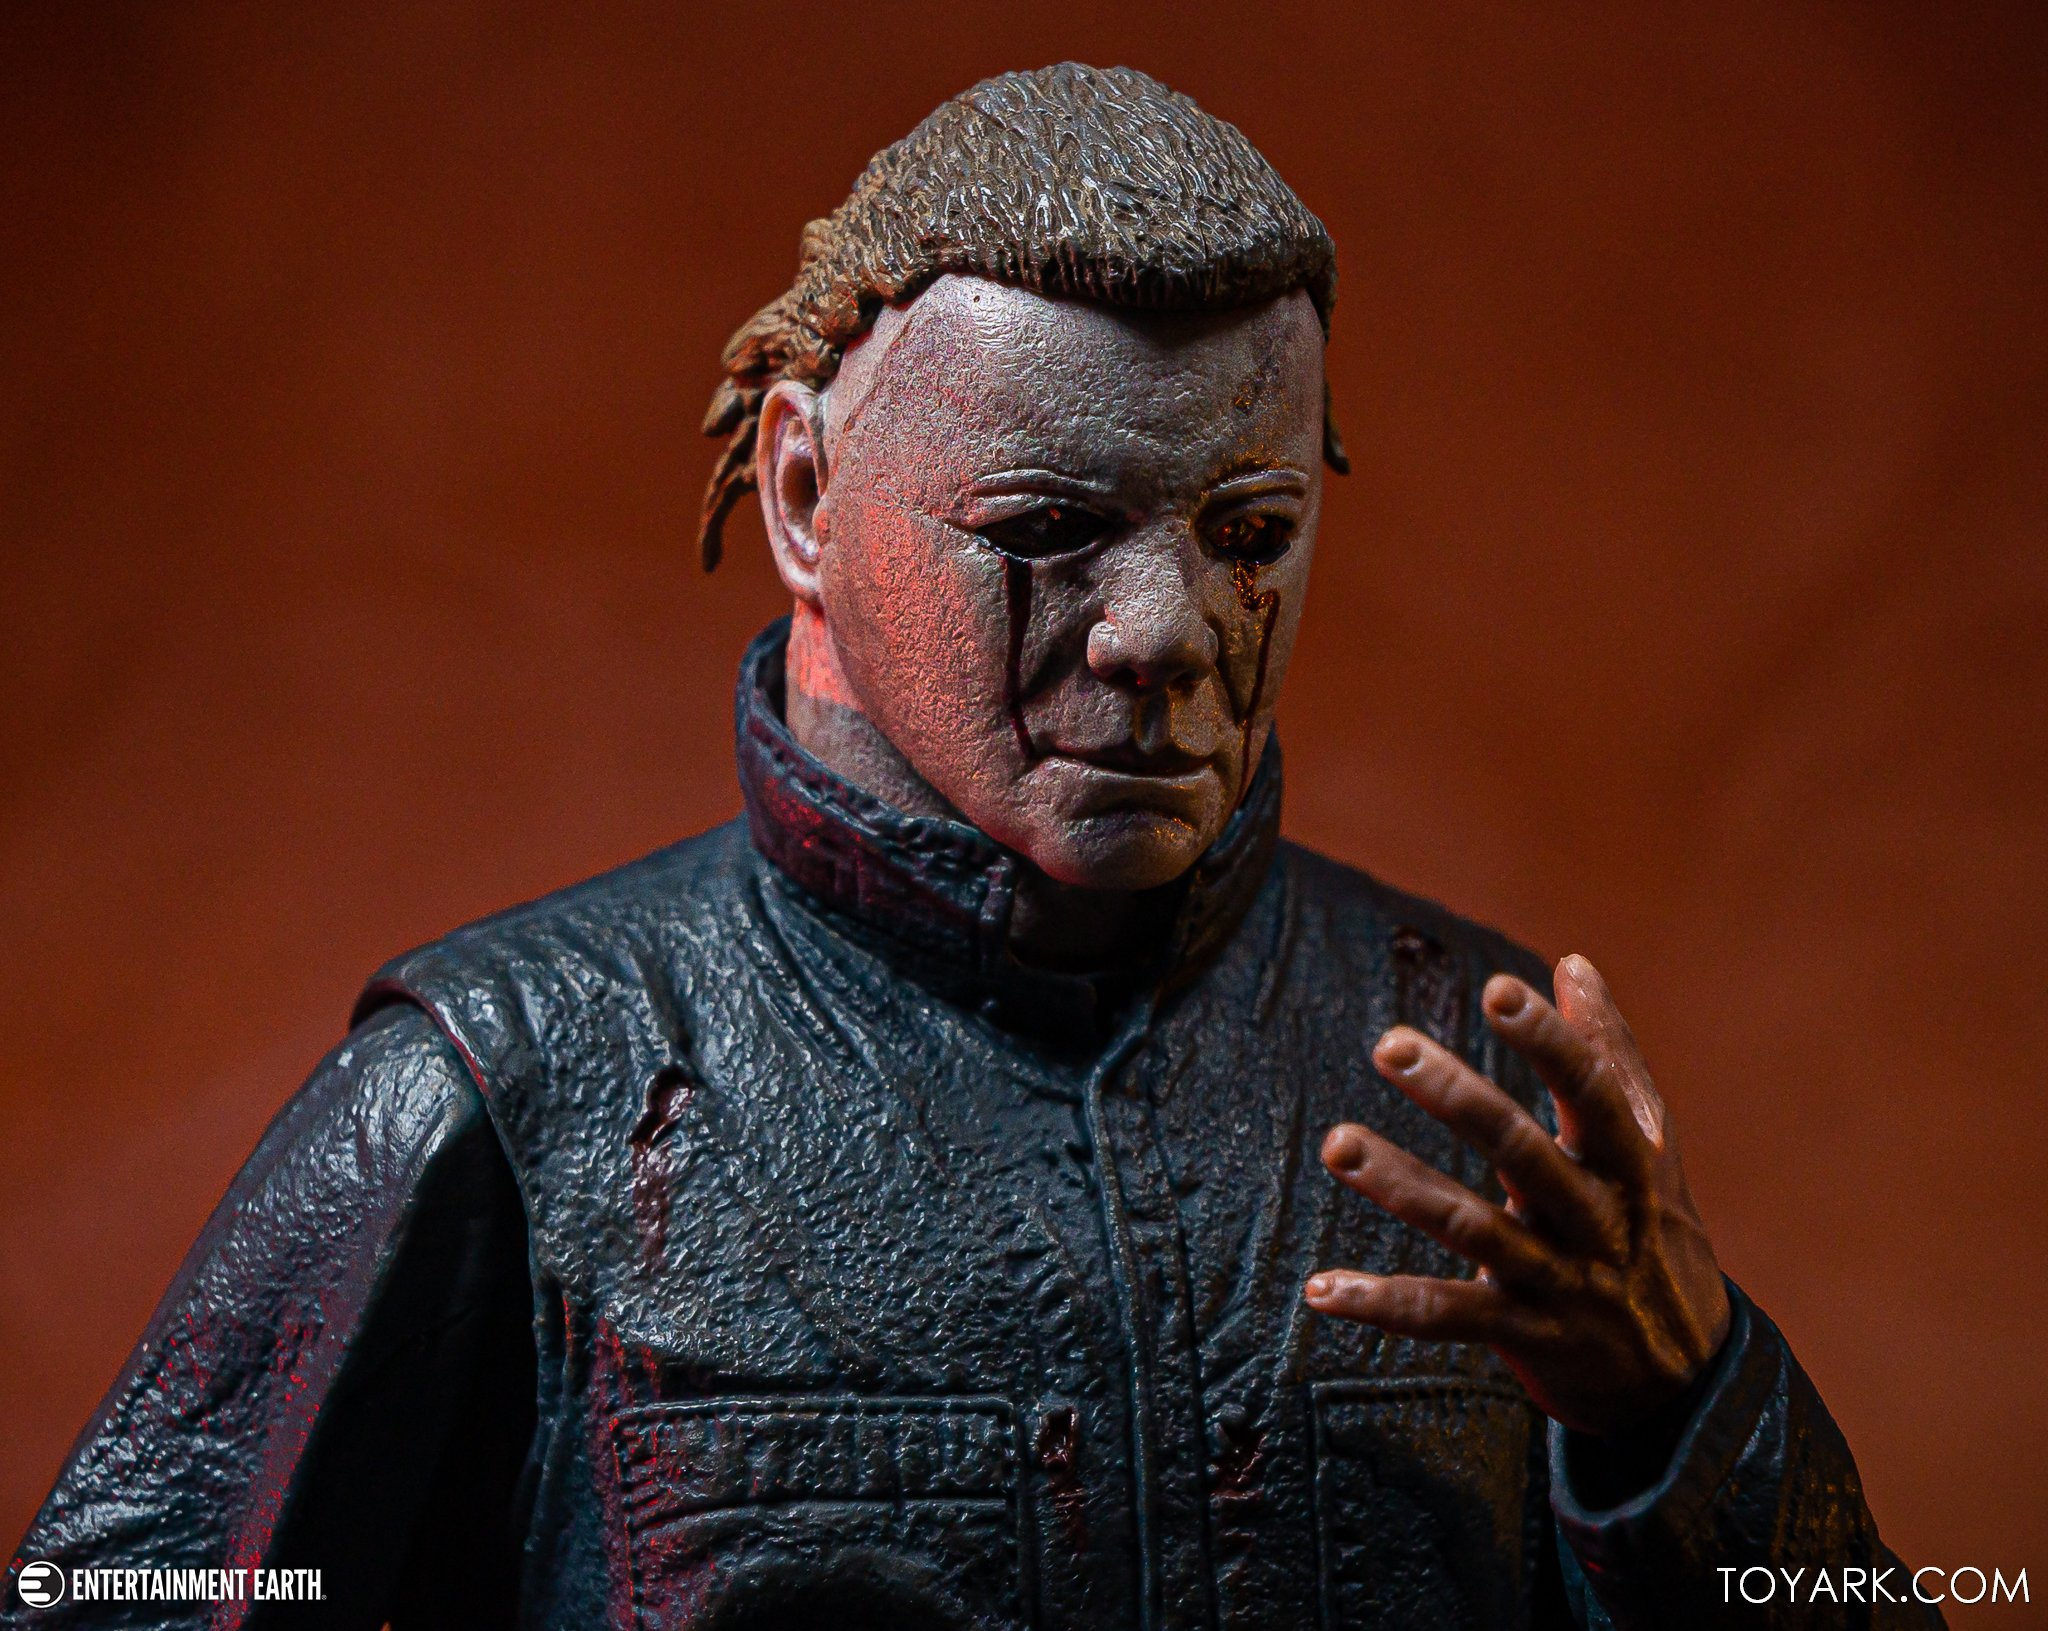 https://news.toyark.com/wp-content/uploads/sites/4/2019/10/NECA-Halloween-II-Michael-Myers-040.jpg